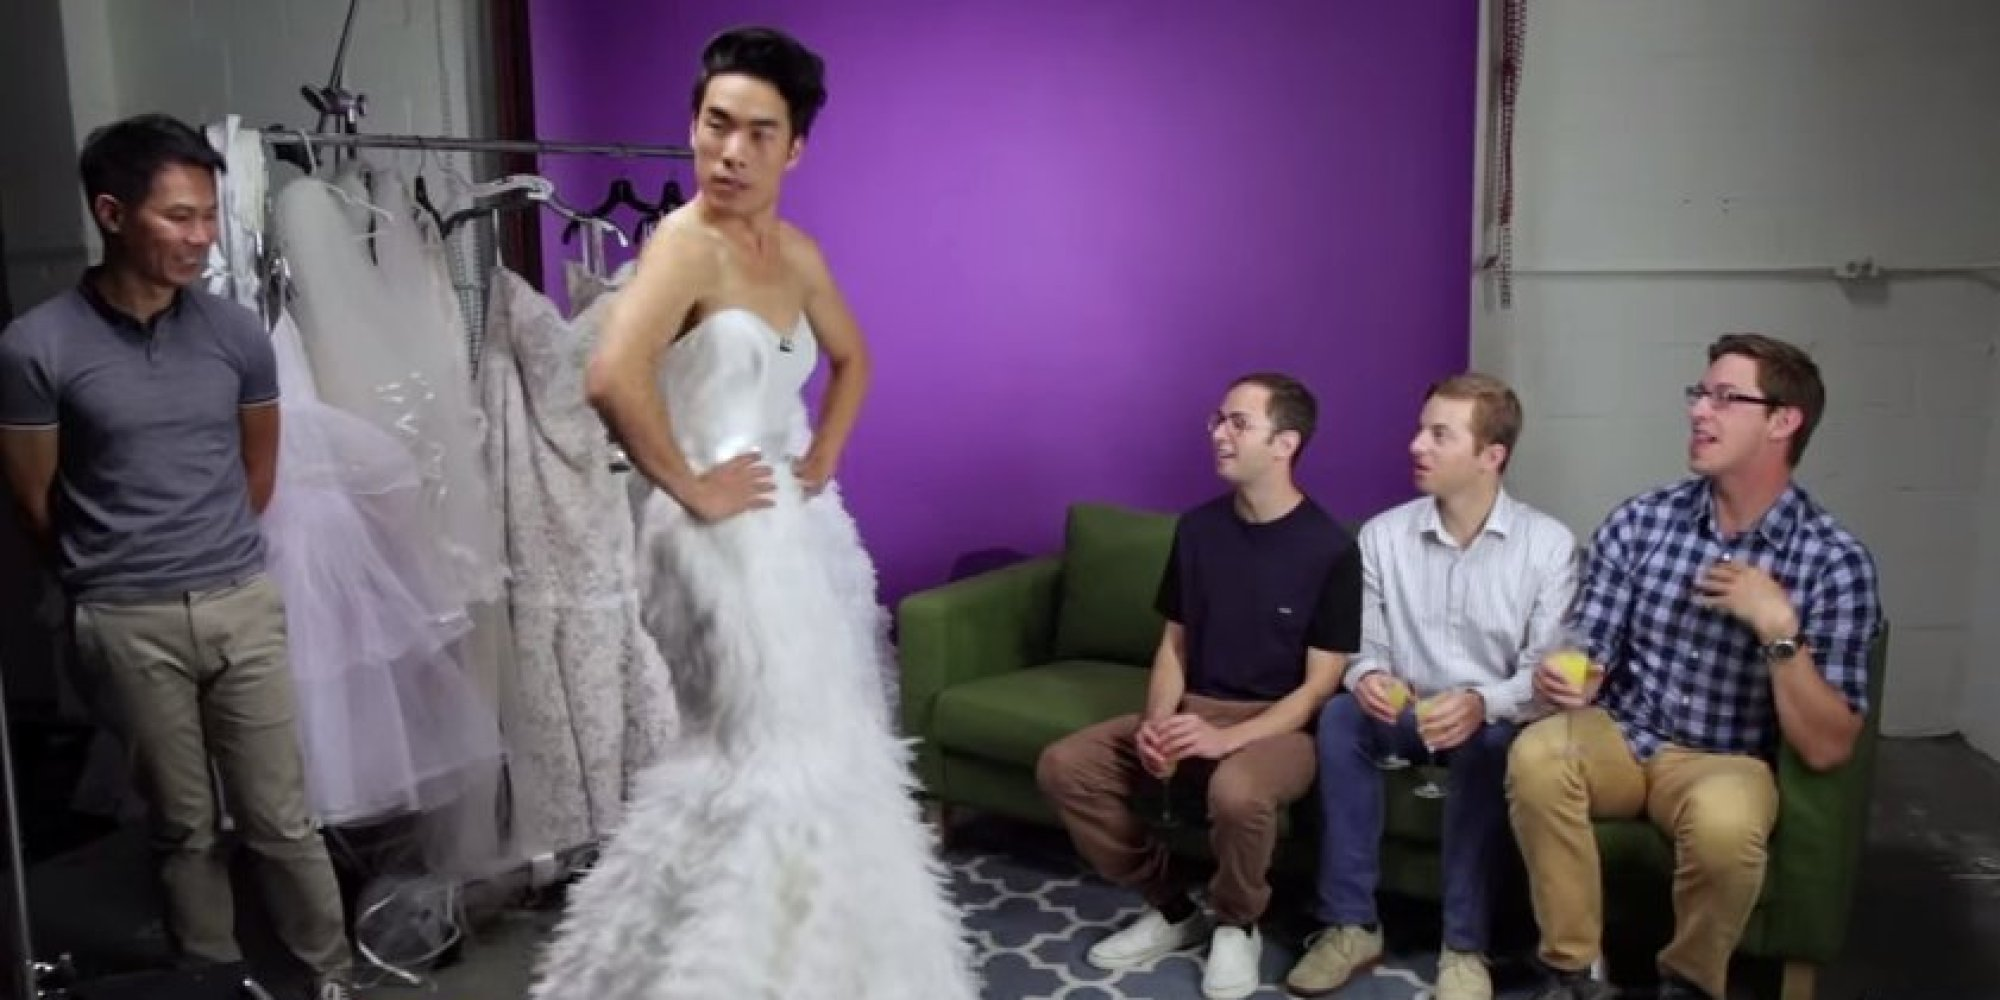 This Is What Happens When Guys Try On Wedding Dresses | HuffPost